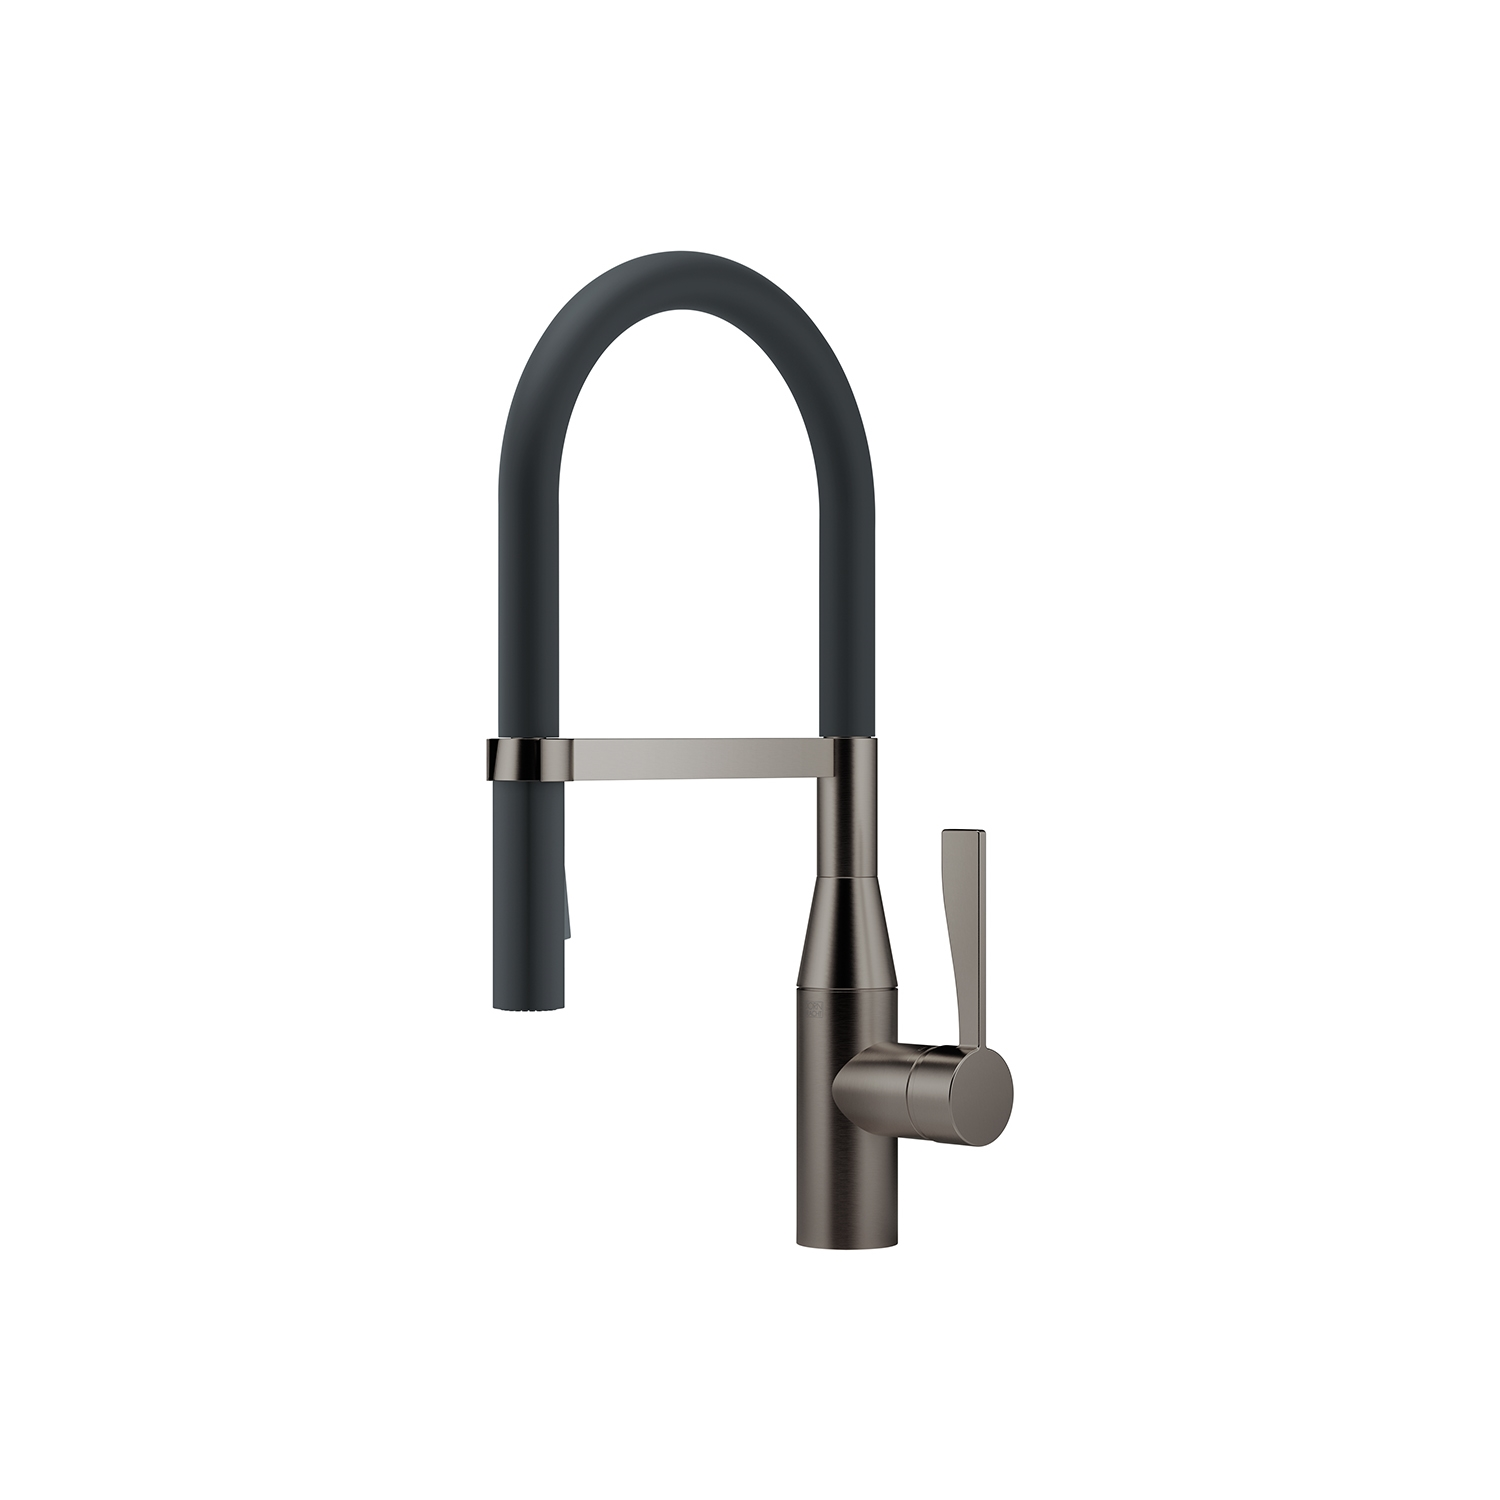 Dornbracht 33865895-990010 Sync Profi Single-Lever Mixer - Dark Platinum Matte